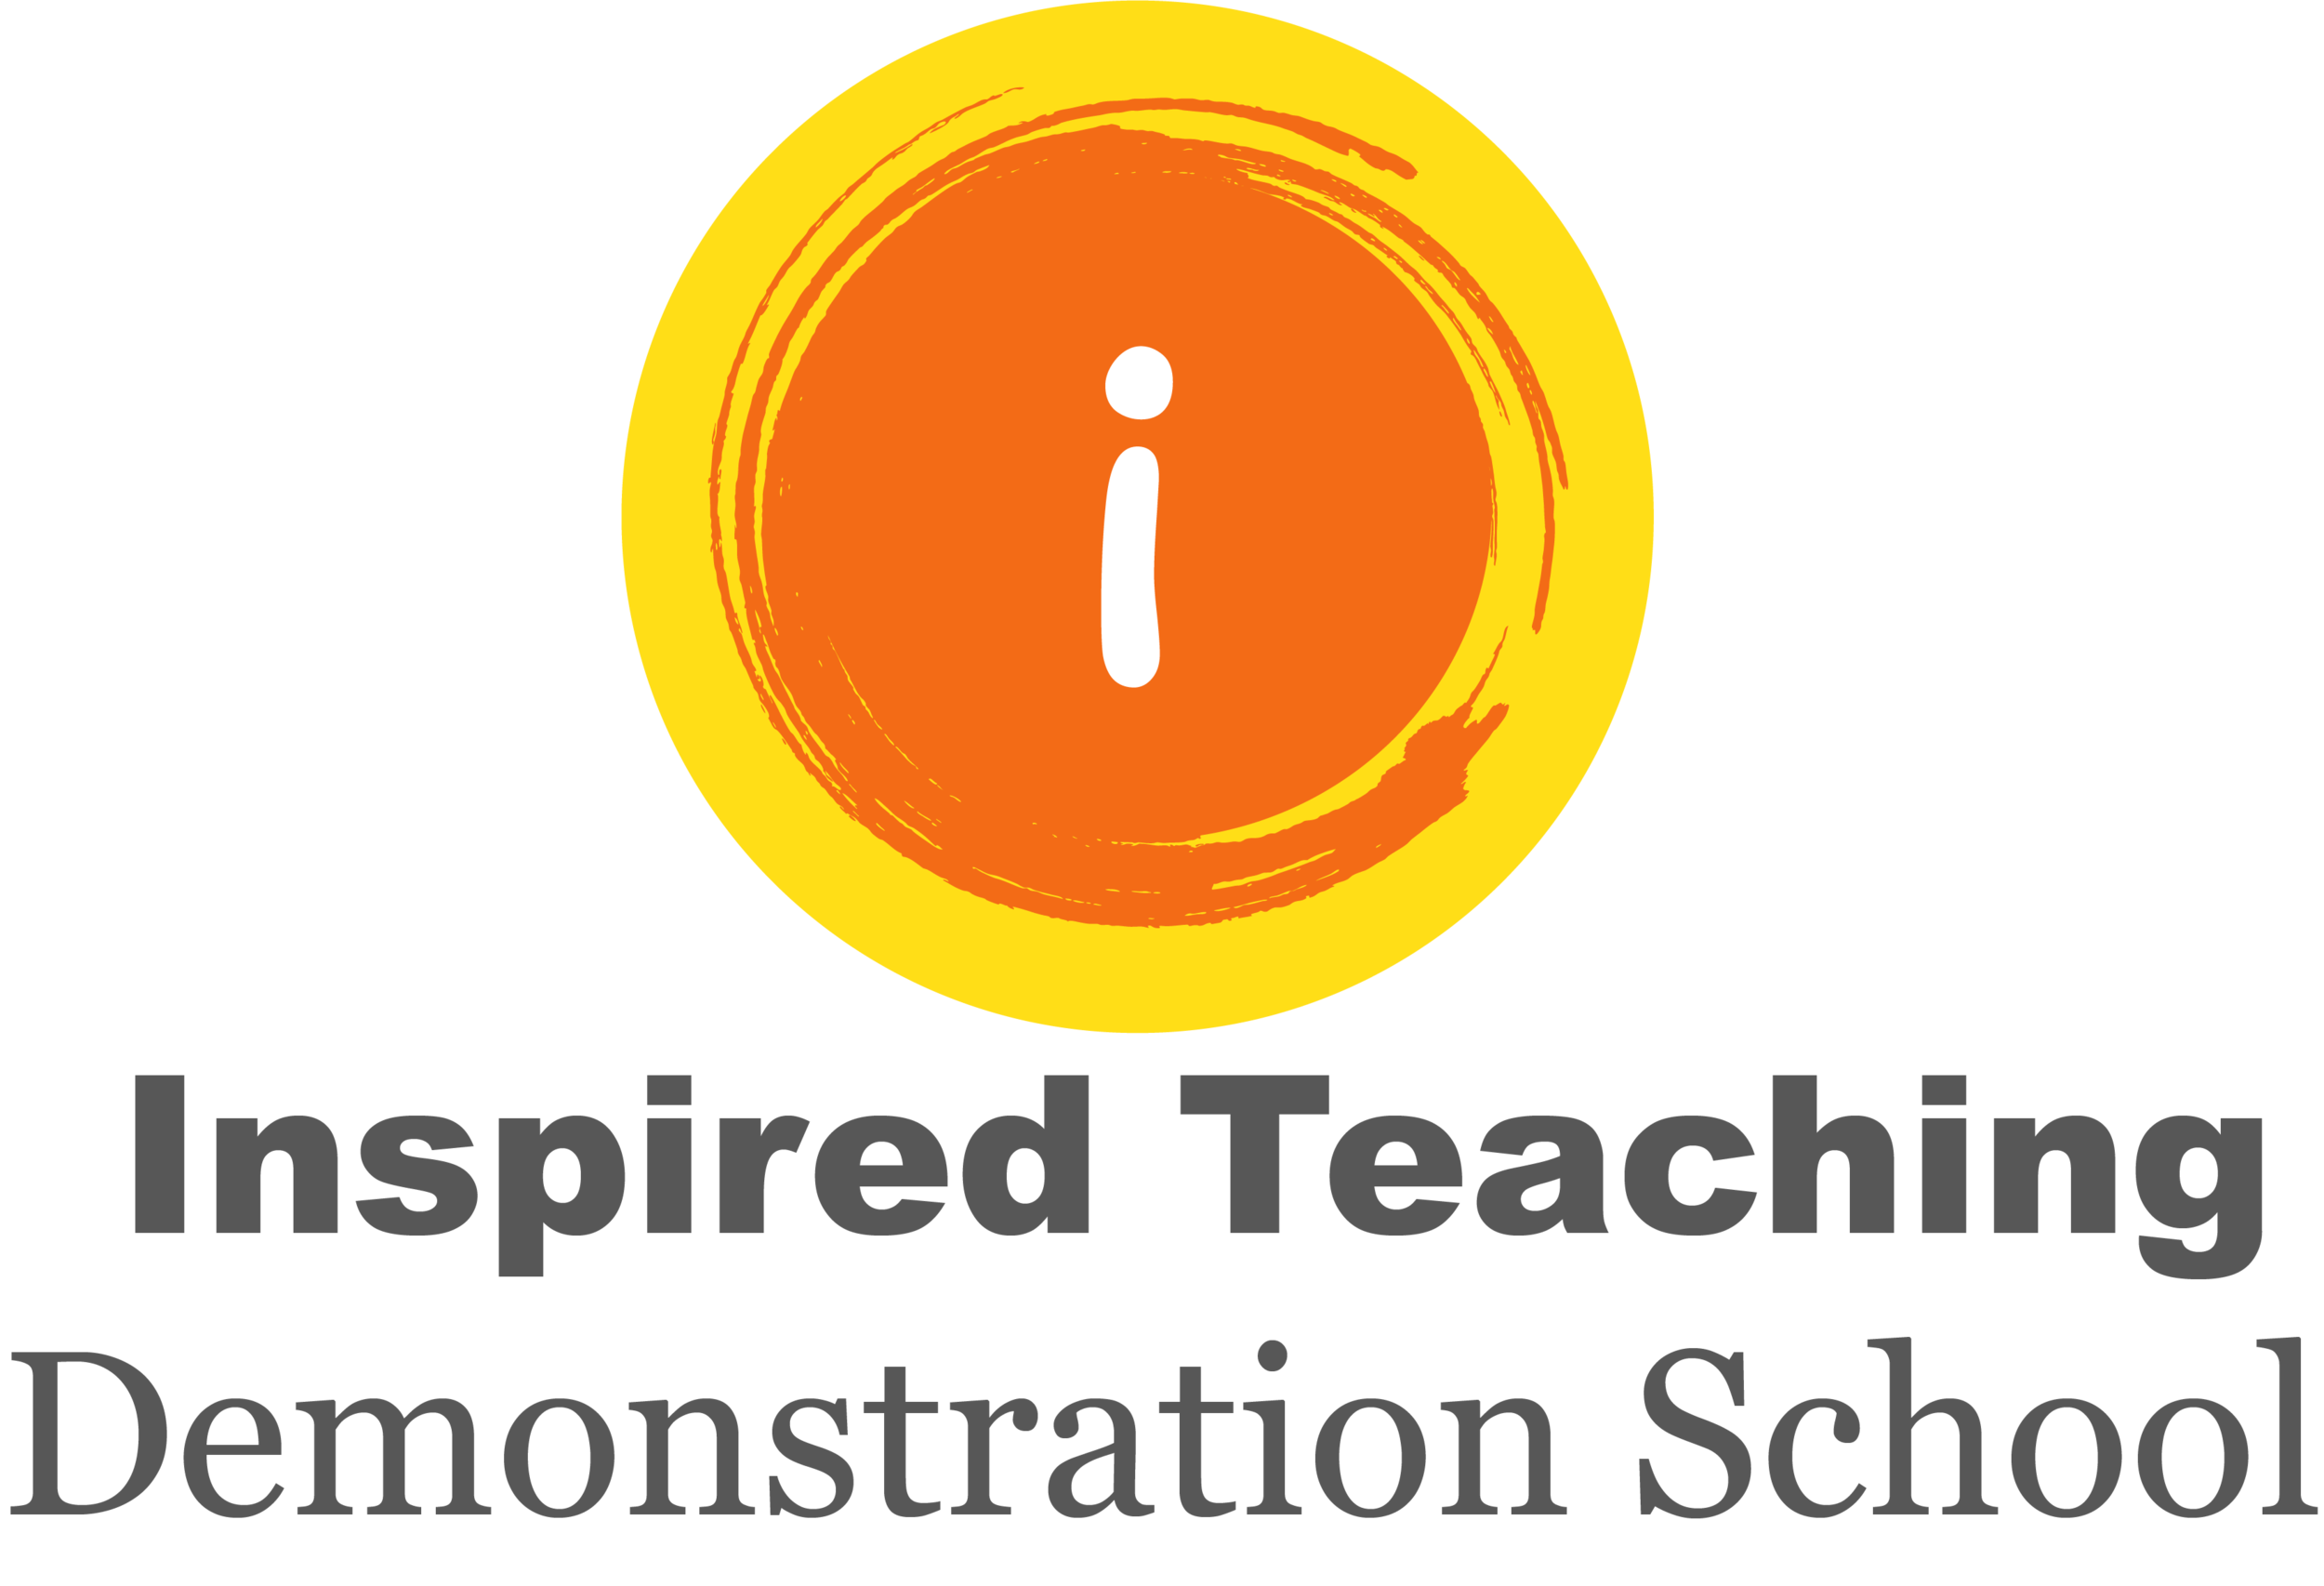 Inspired Teaching Demonstration School promotes learning in a diverse environment through a demanding, inquiry-based curriculum.